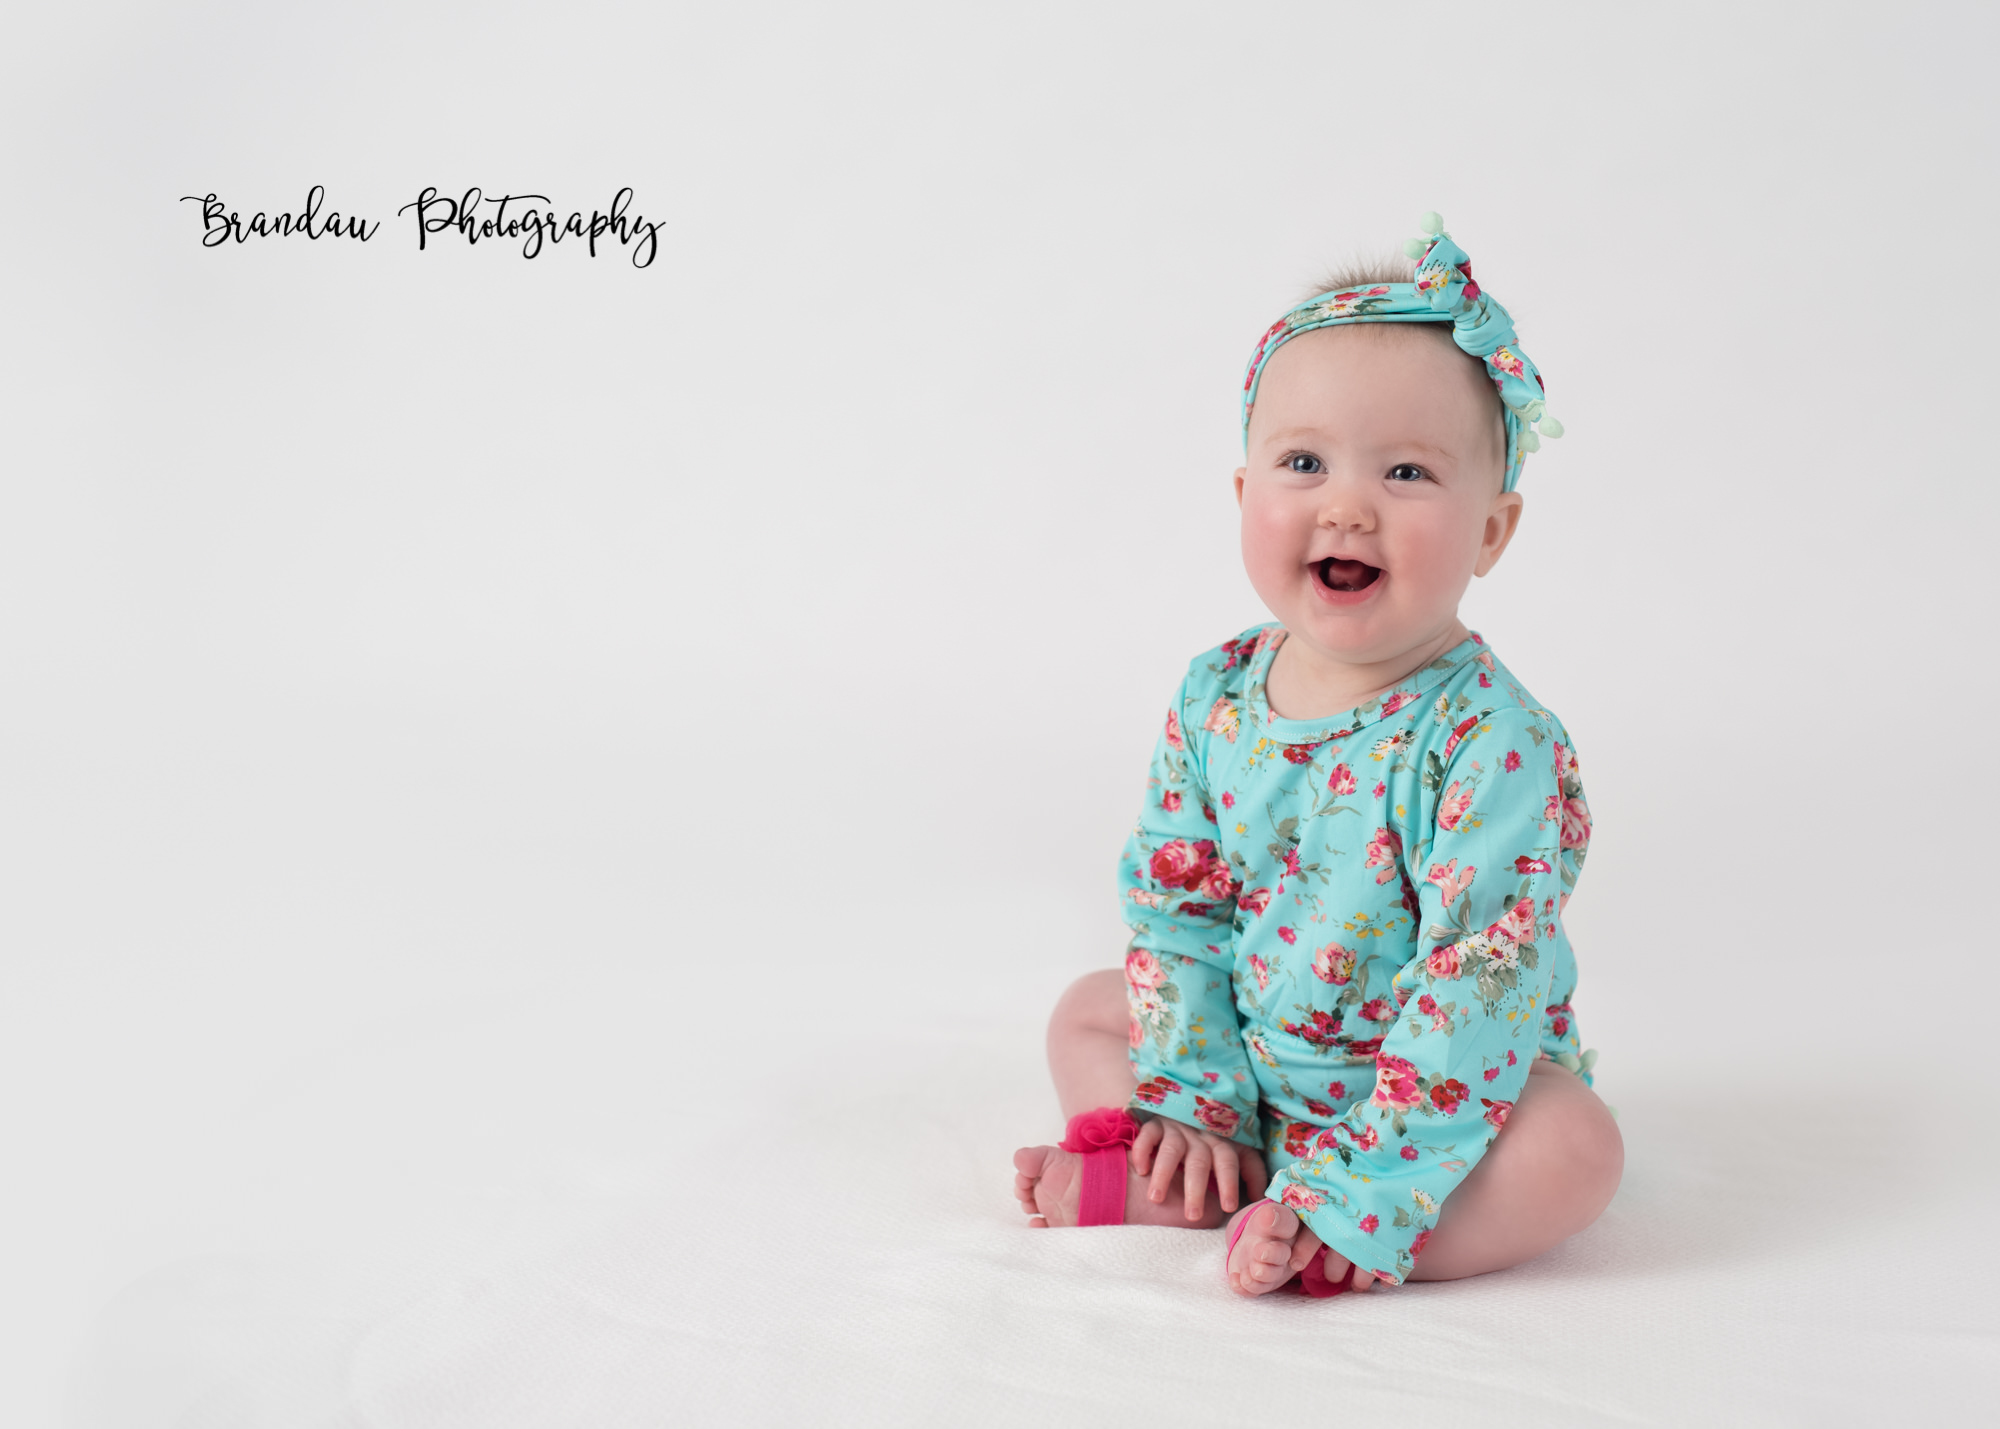 Brandau Photography_ 6 month girl.jpg